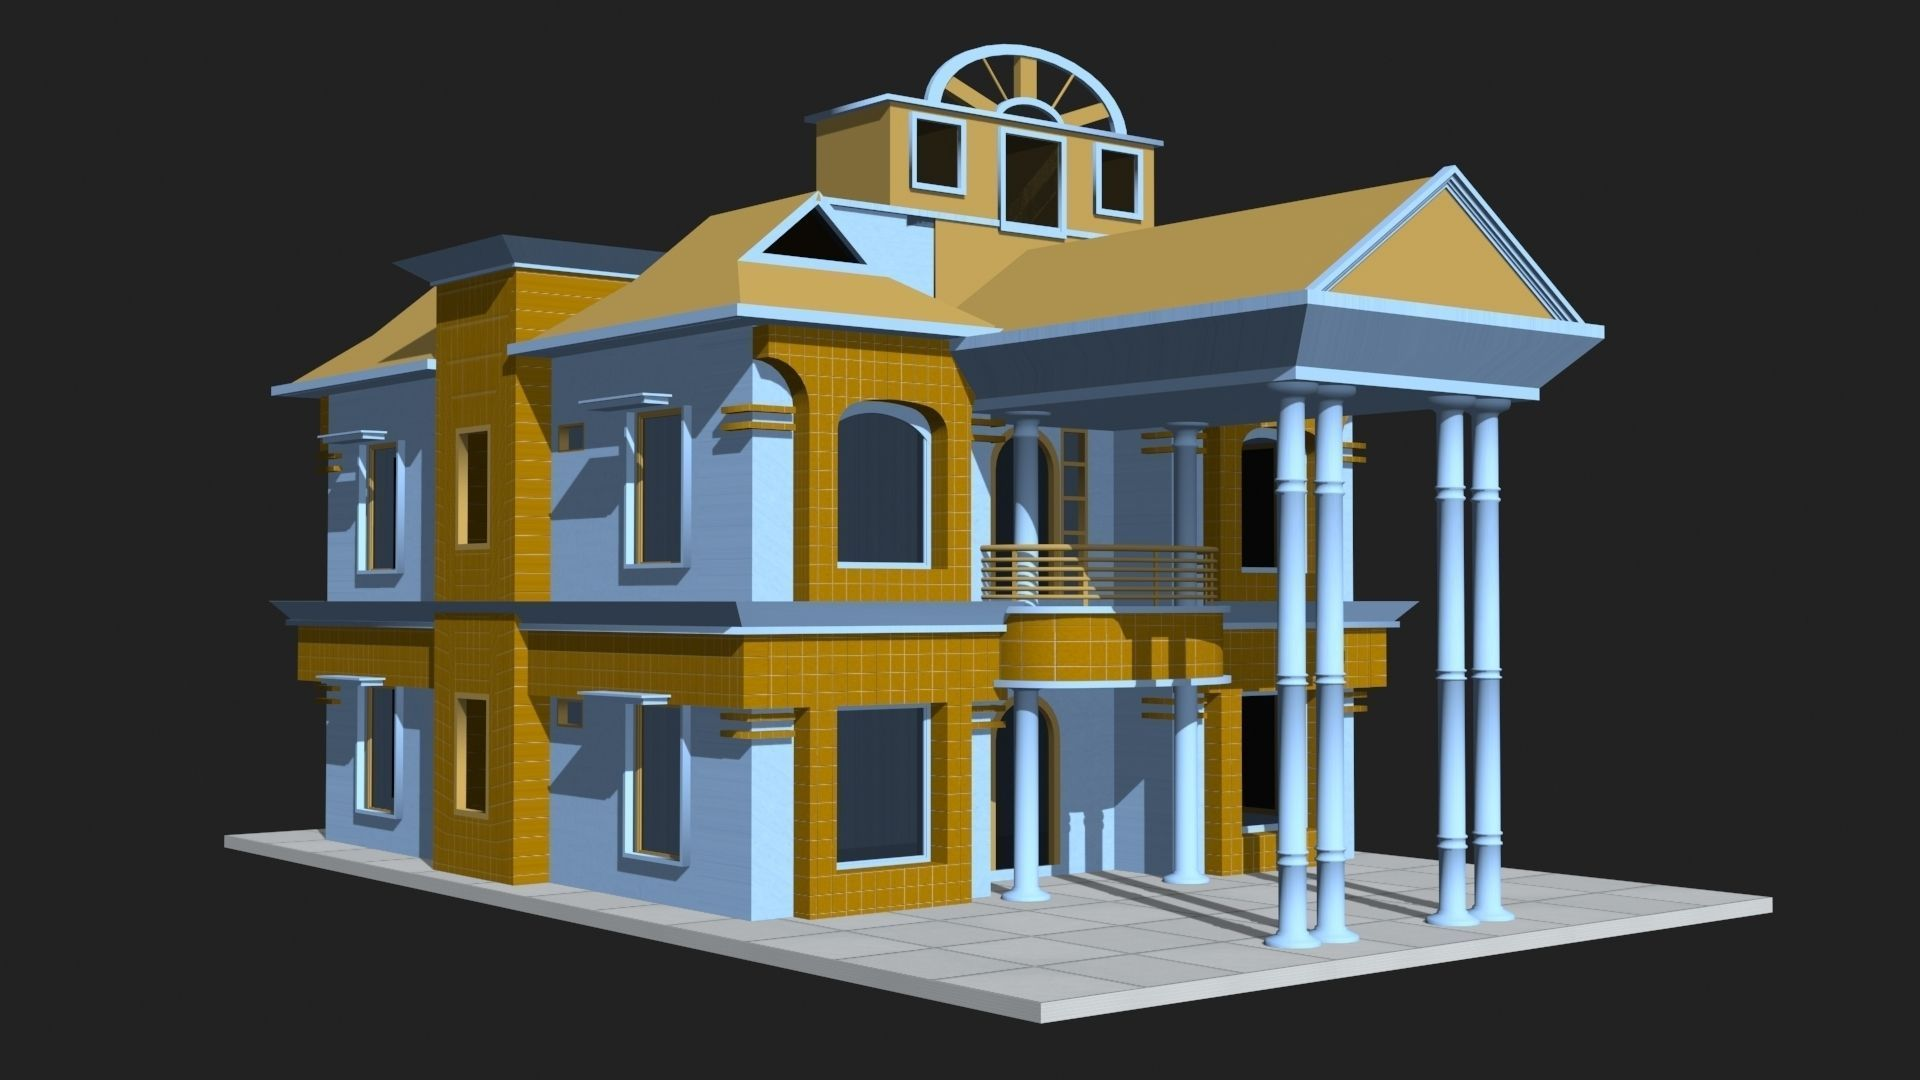 3d House Building Low Poly 3d Model Ready For Virtual Reality VR